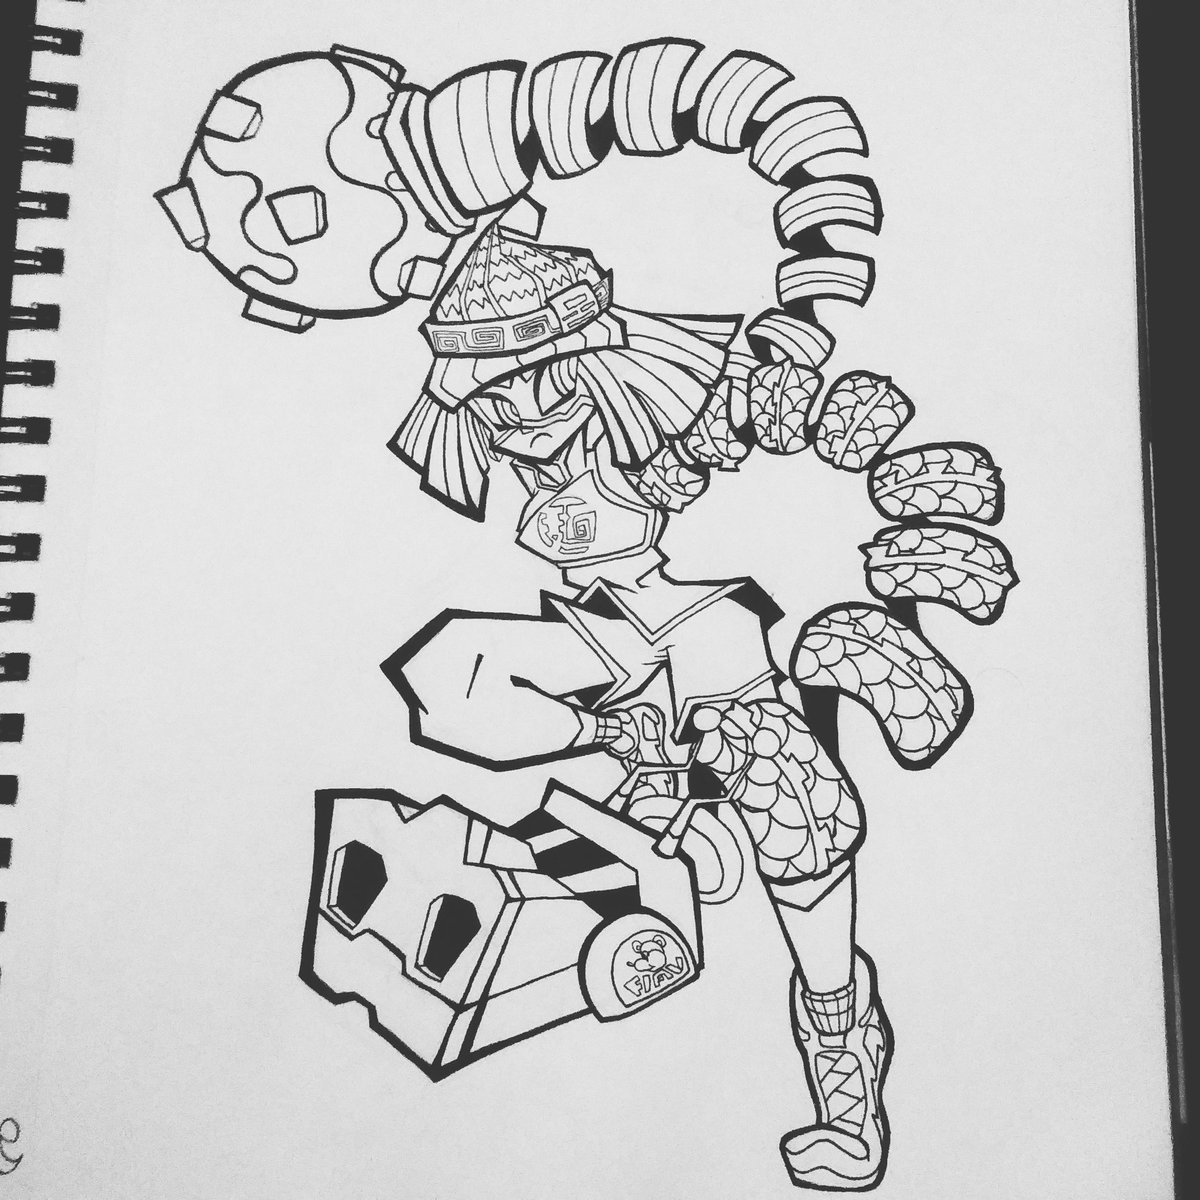 MIN MIN #SmashBrosUltimate #ARMS #art https://t.co/cAwJIKWRtB